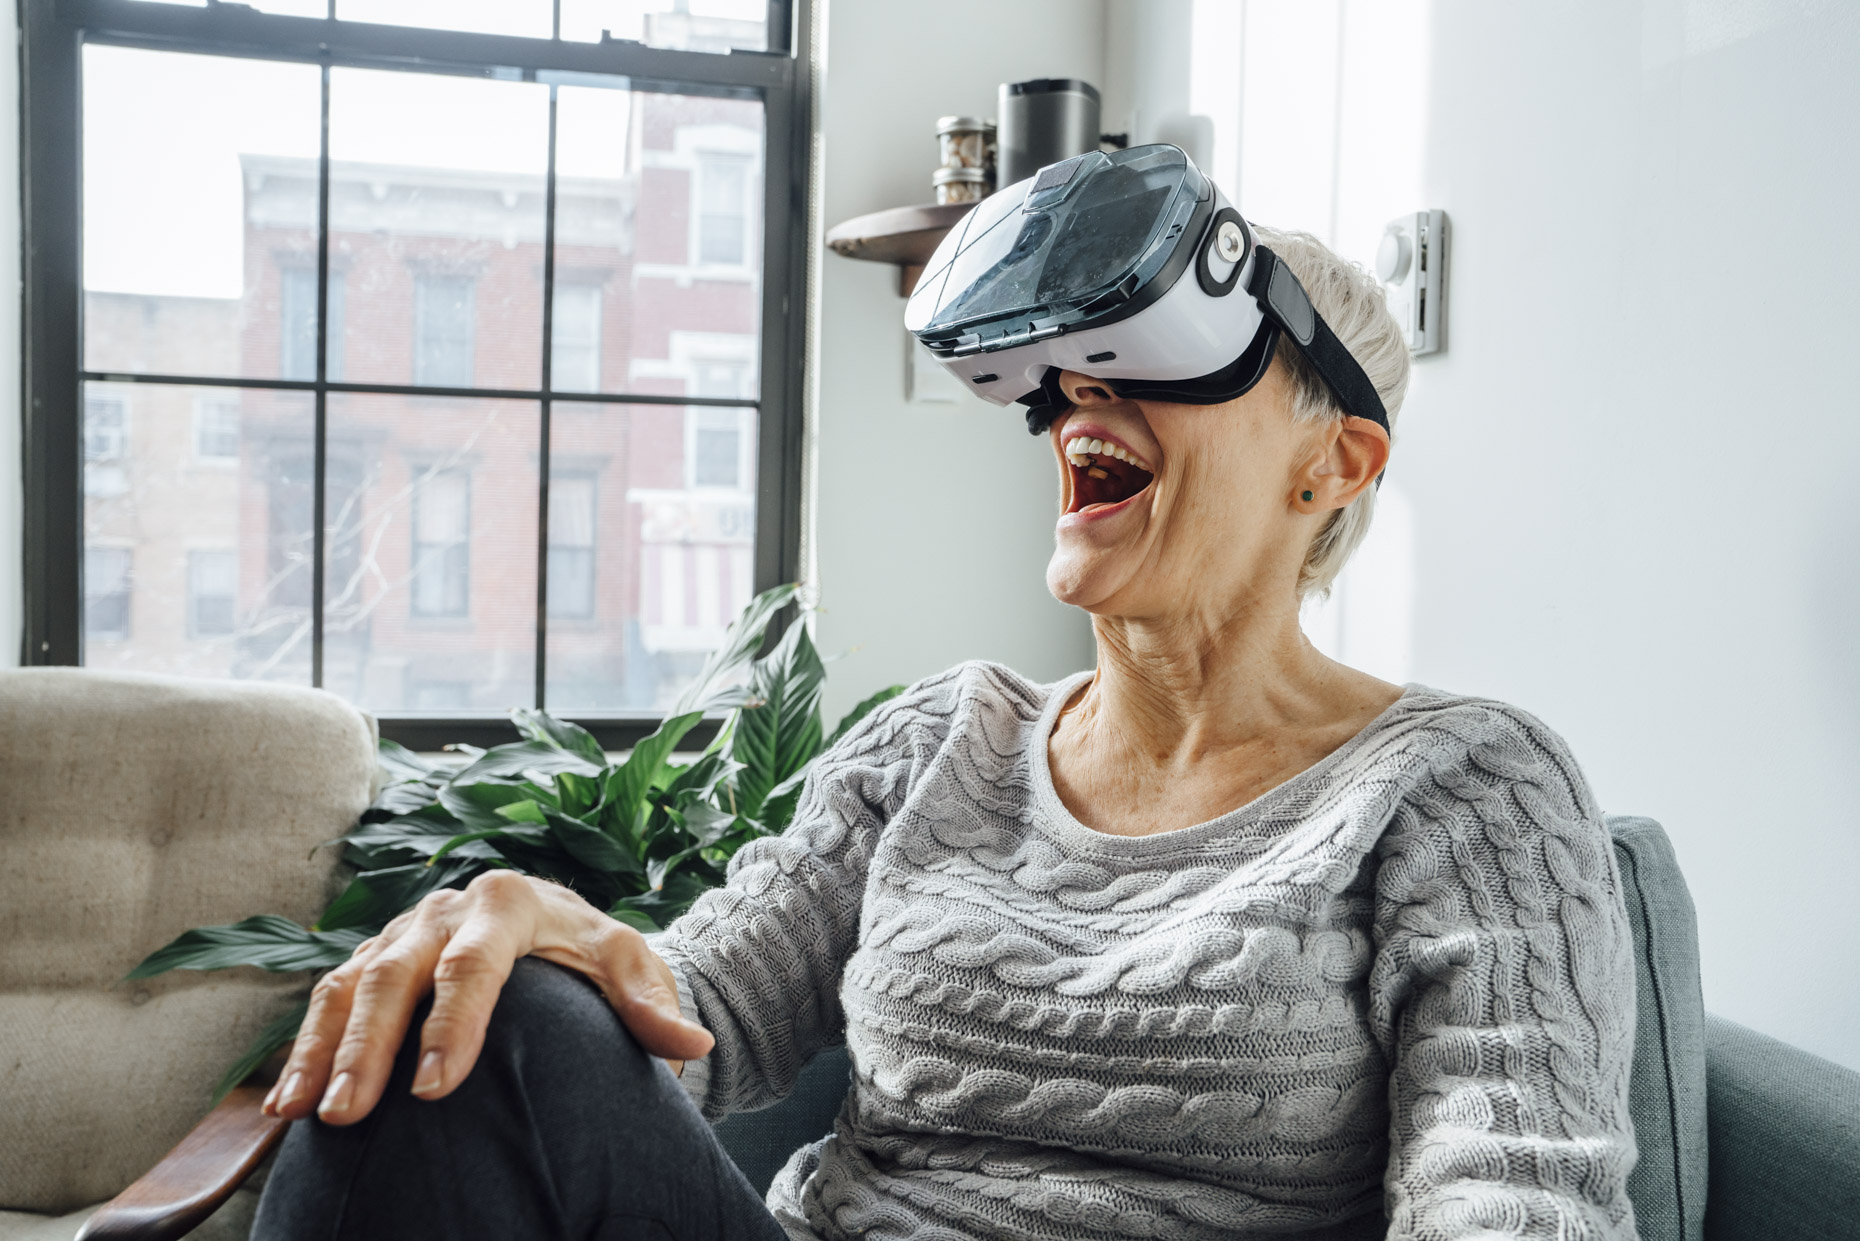 Senior woman excited about virtual reality glasses